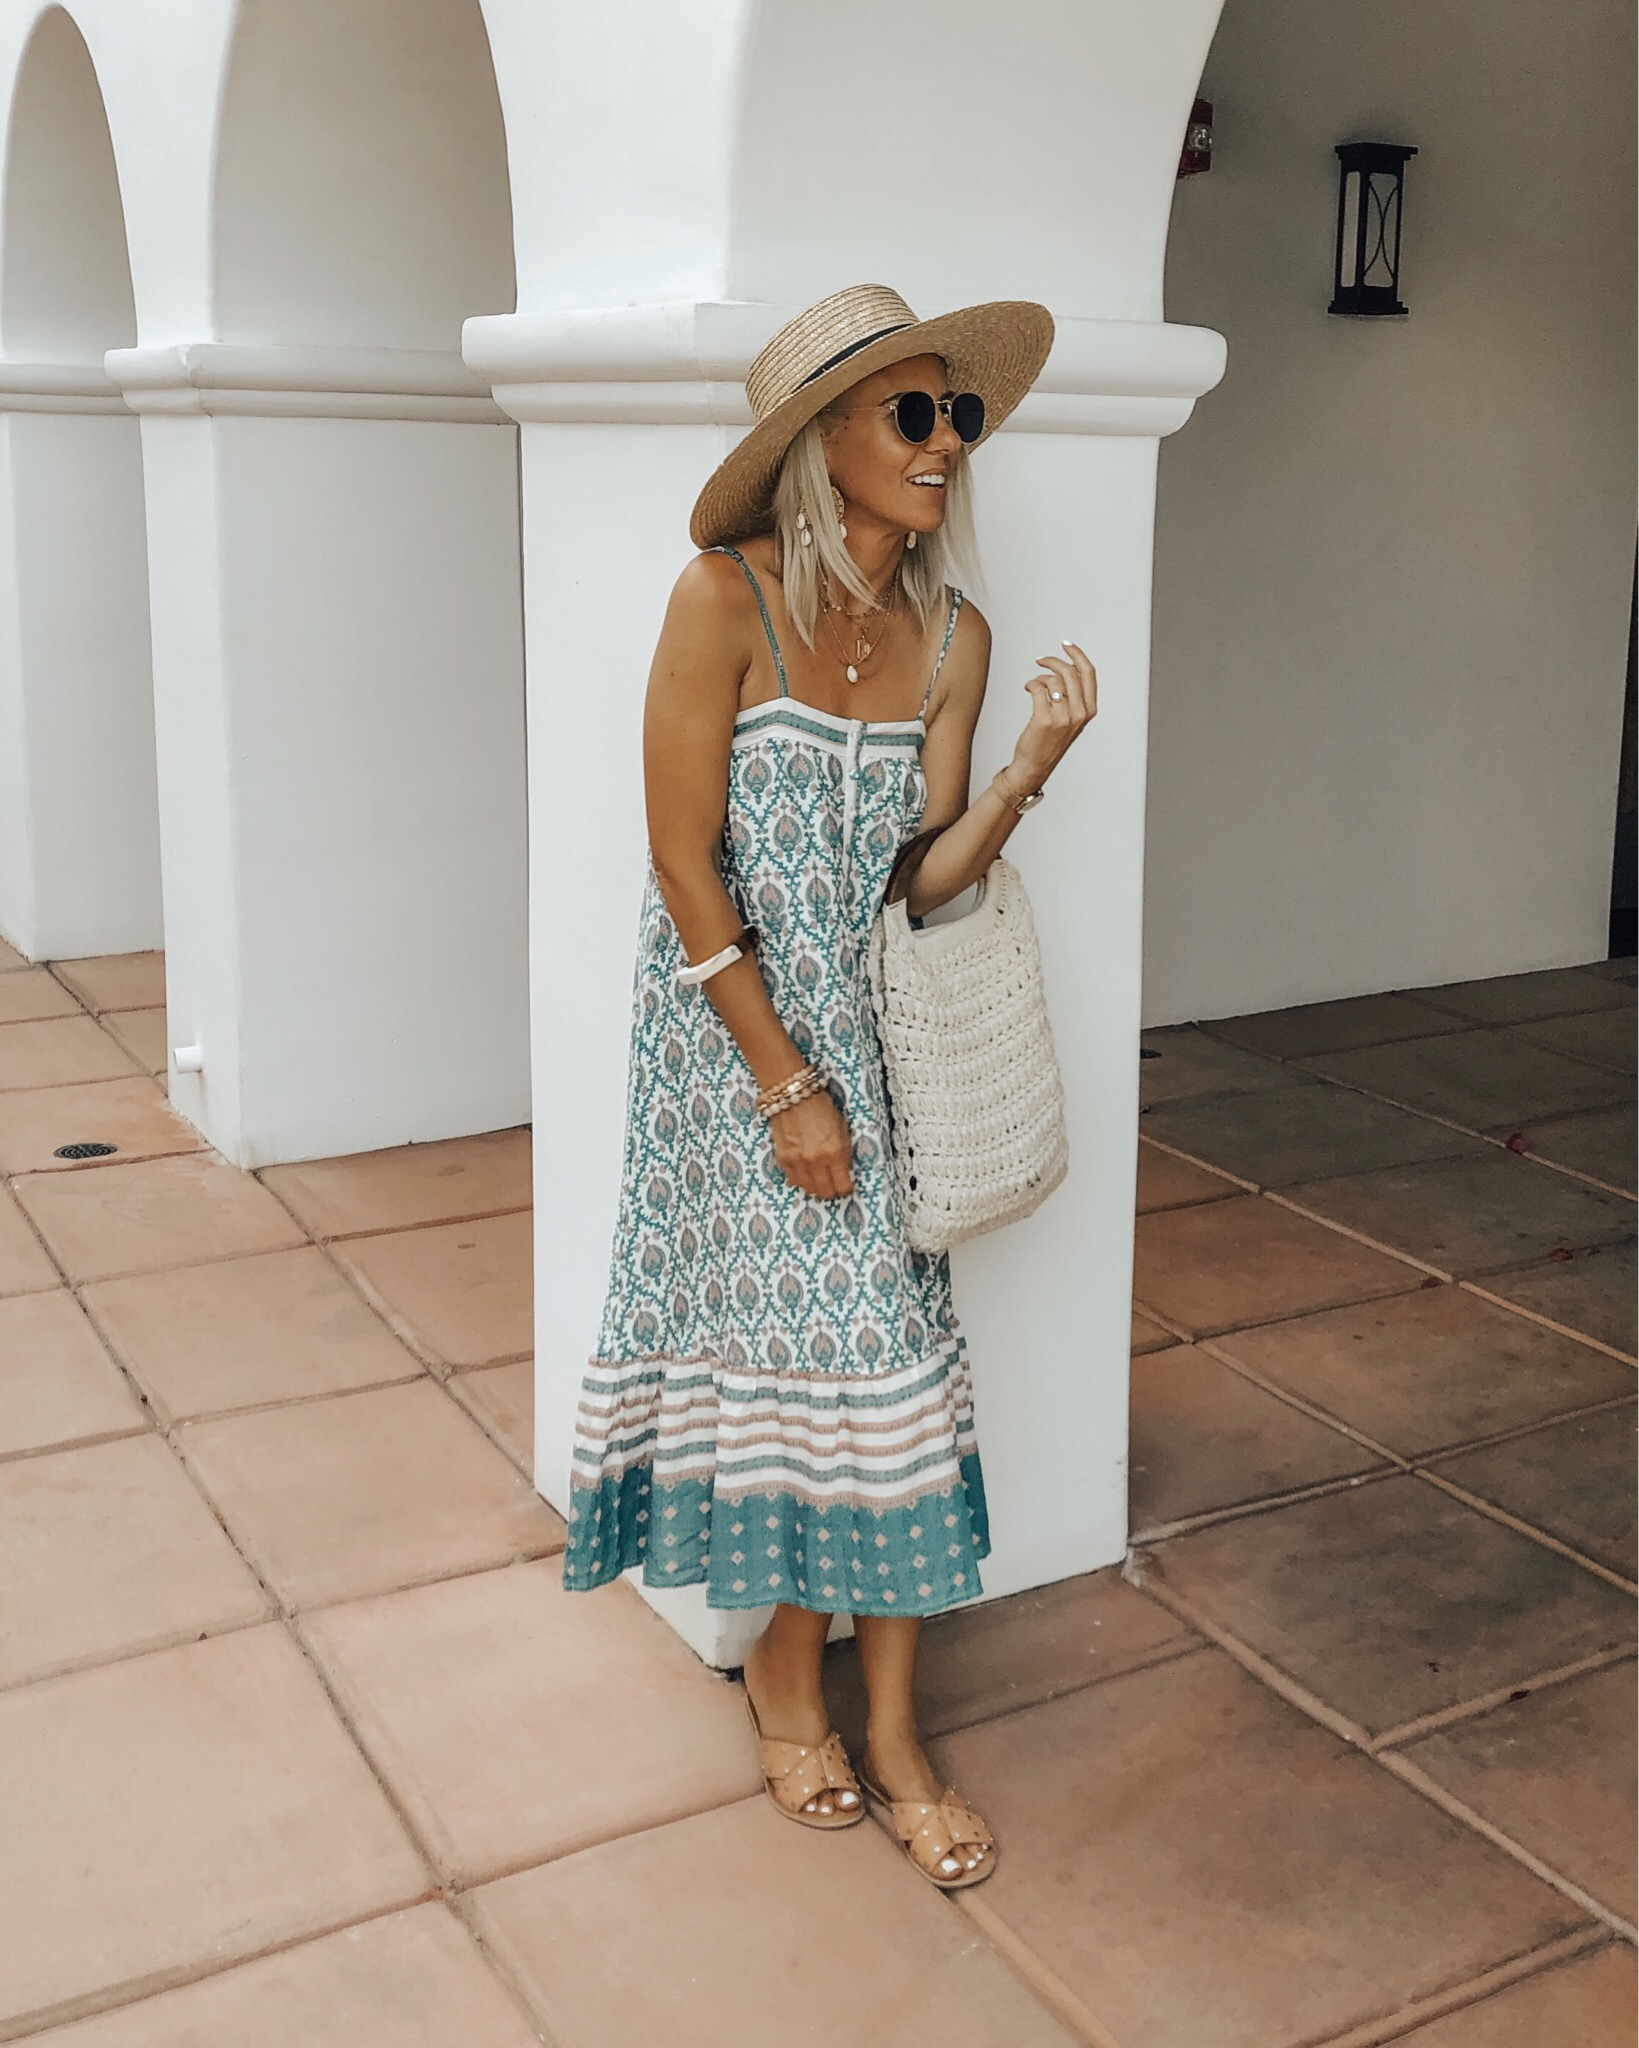 JULY TOP 10- Jaclyn De Leon Style + I'm sharing the top 10 selling items from the month of July and of course my must have travel jewelry case came in at number 1 yet again! Other great Amazon finds such as a boho dress, statement earrings, and necklace. Also sandals and booties in the mix. Which is your favorite?